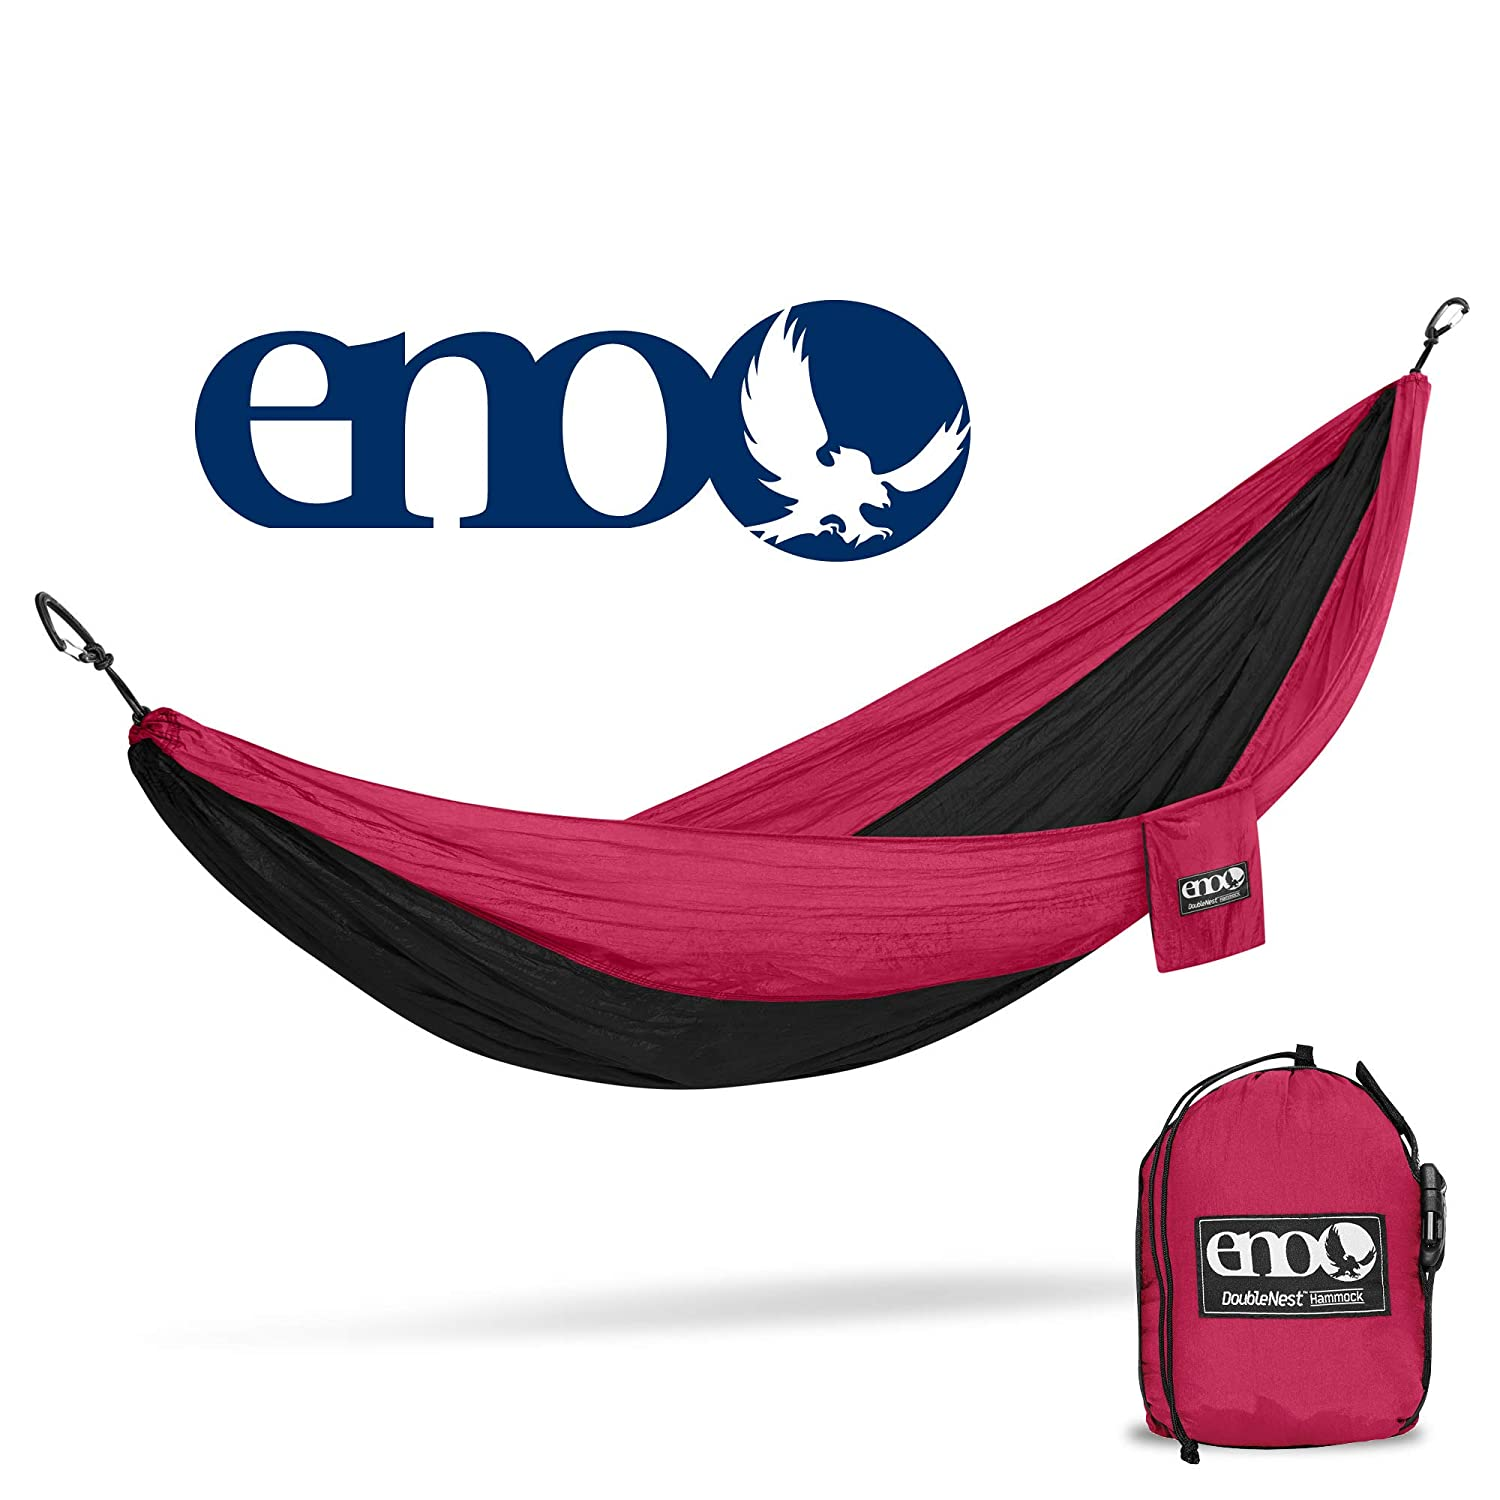 Portable Hammock for Two Portable Hammock for Two for Outdoor Camping Special Edition Colors Grey//Green//Blue Eagles Nest Outfitters DoubleNest Hammock ENO